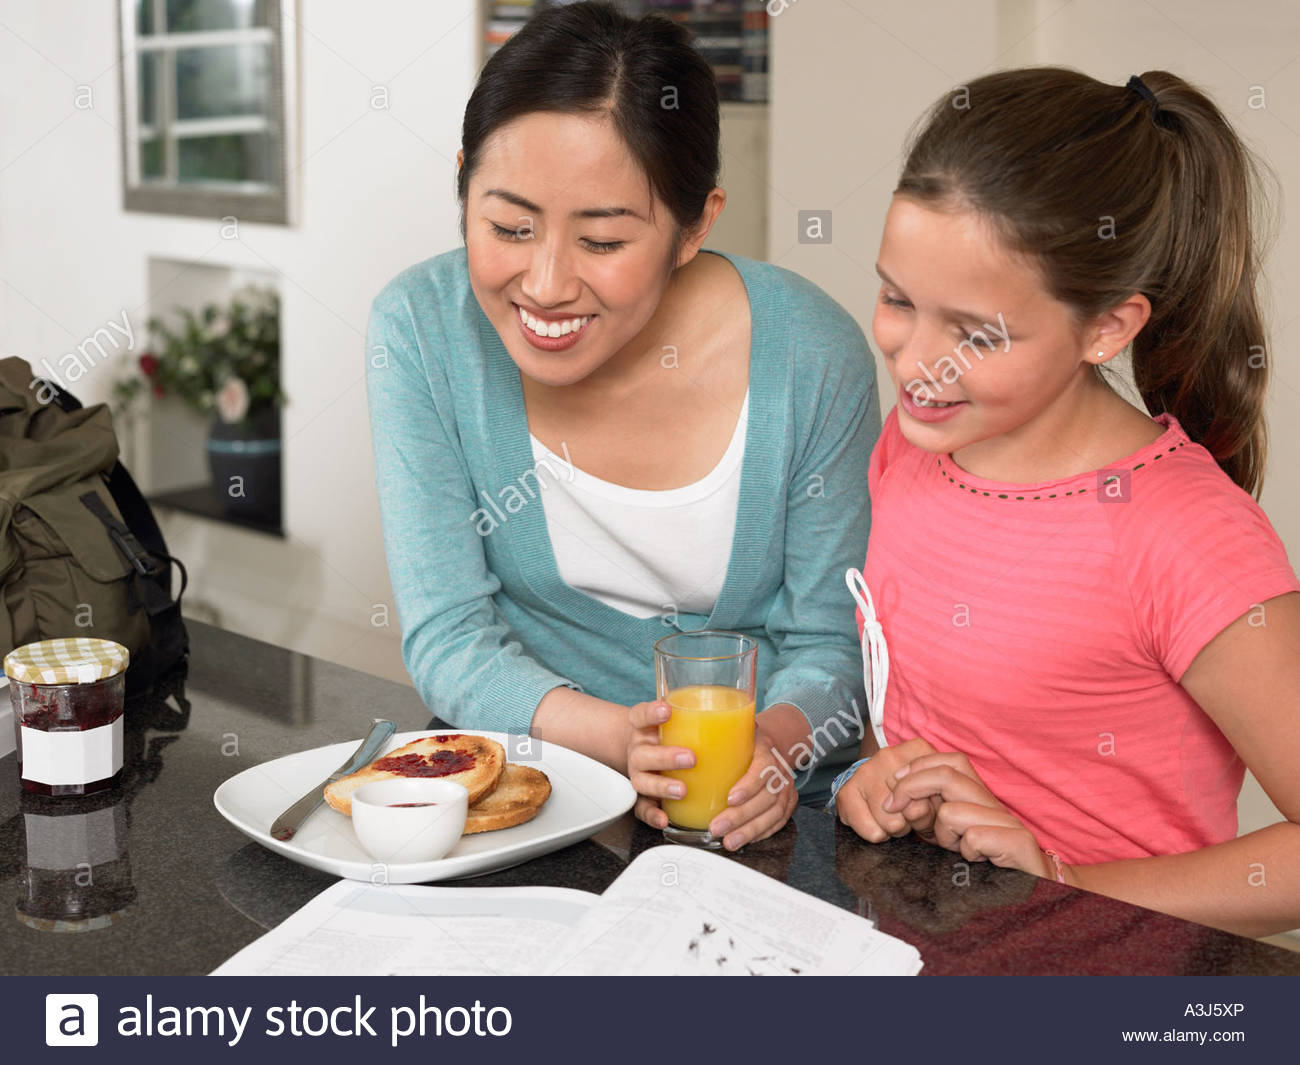 Exchange student and girl at breakfast - Stock Image